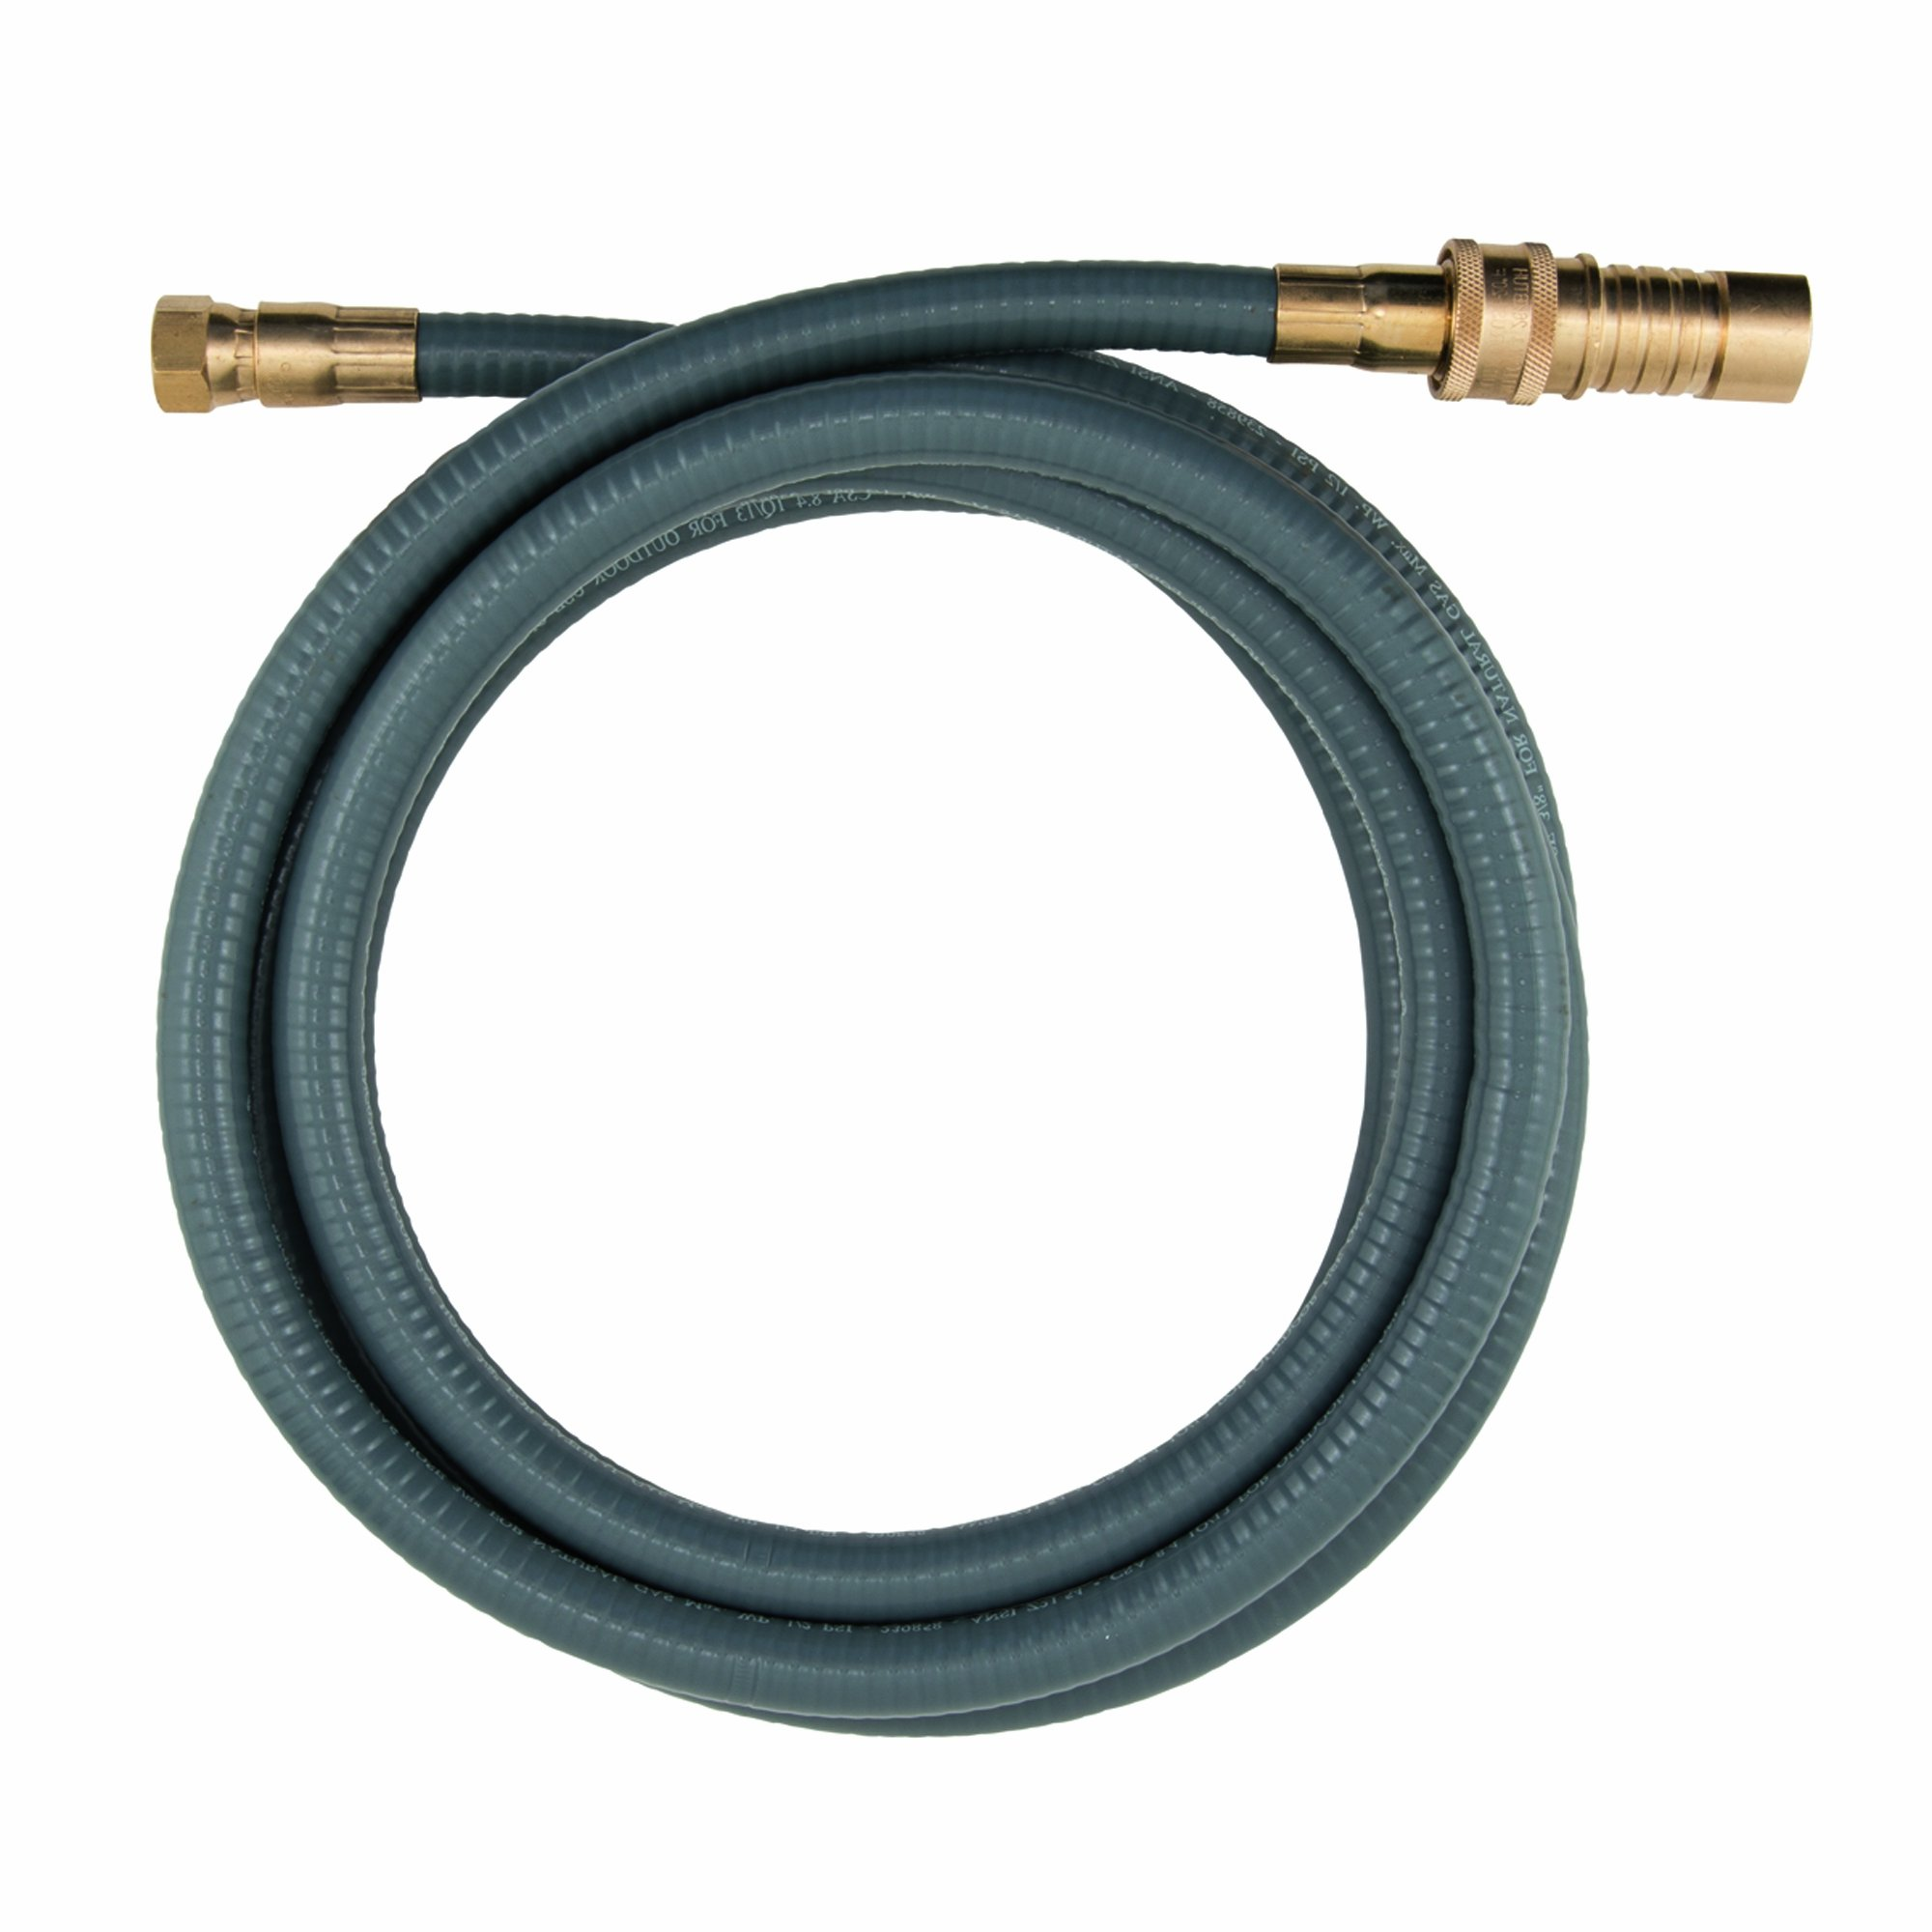 Dormont 30D-10QD Portable Outdoor Gas Connector, 1/2 In. x 10 Ft. Long